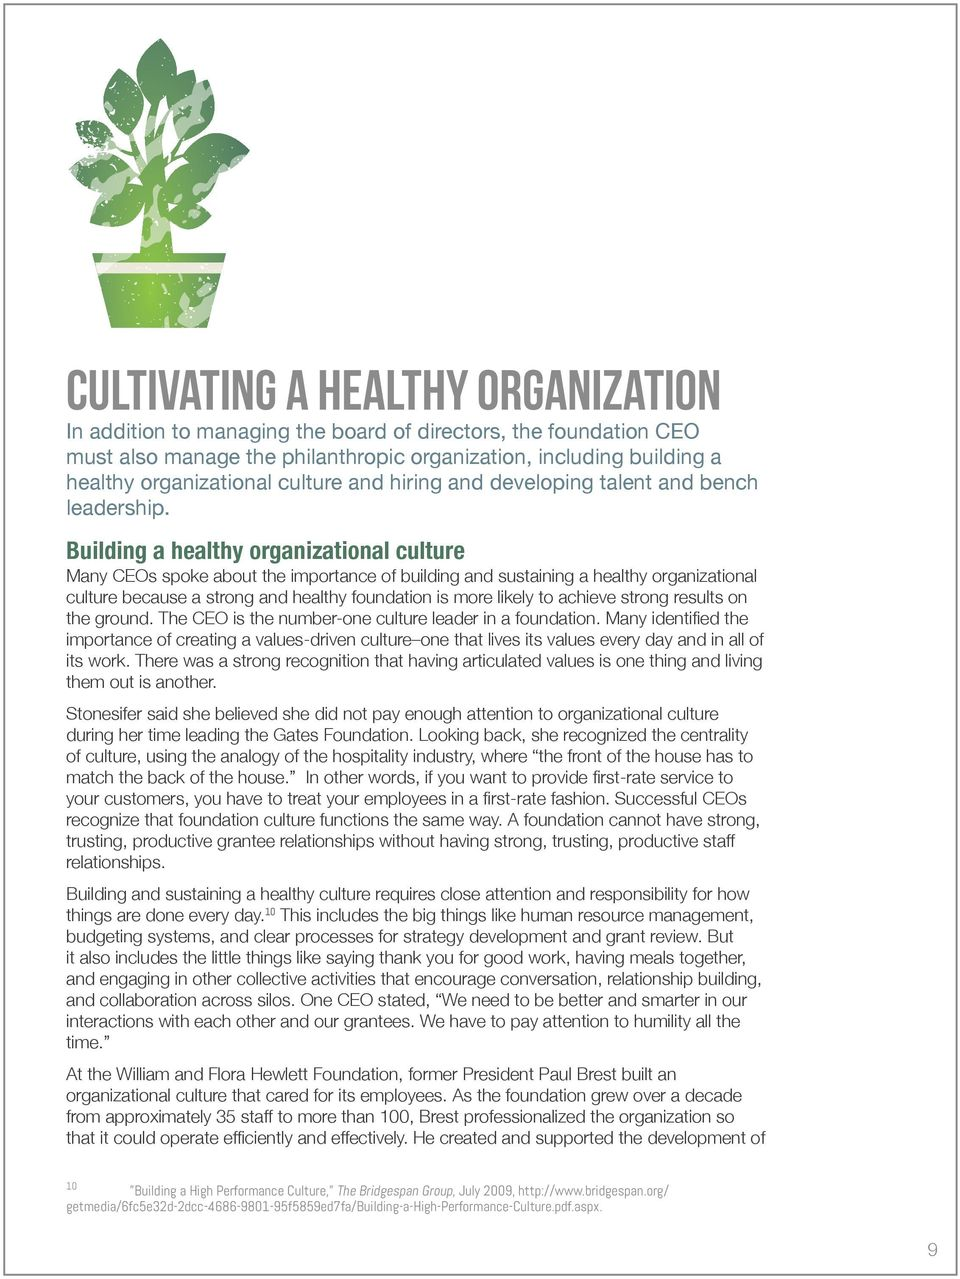 Building a healthy organizational culture Many CEOs spoke about the importance of building and sustaining a healthy organizational culture because a strong and healthy foundation is more likely to